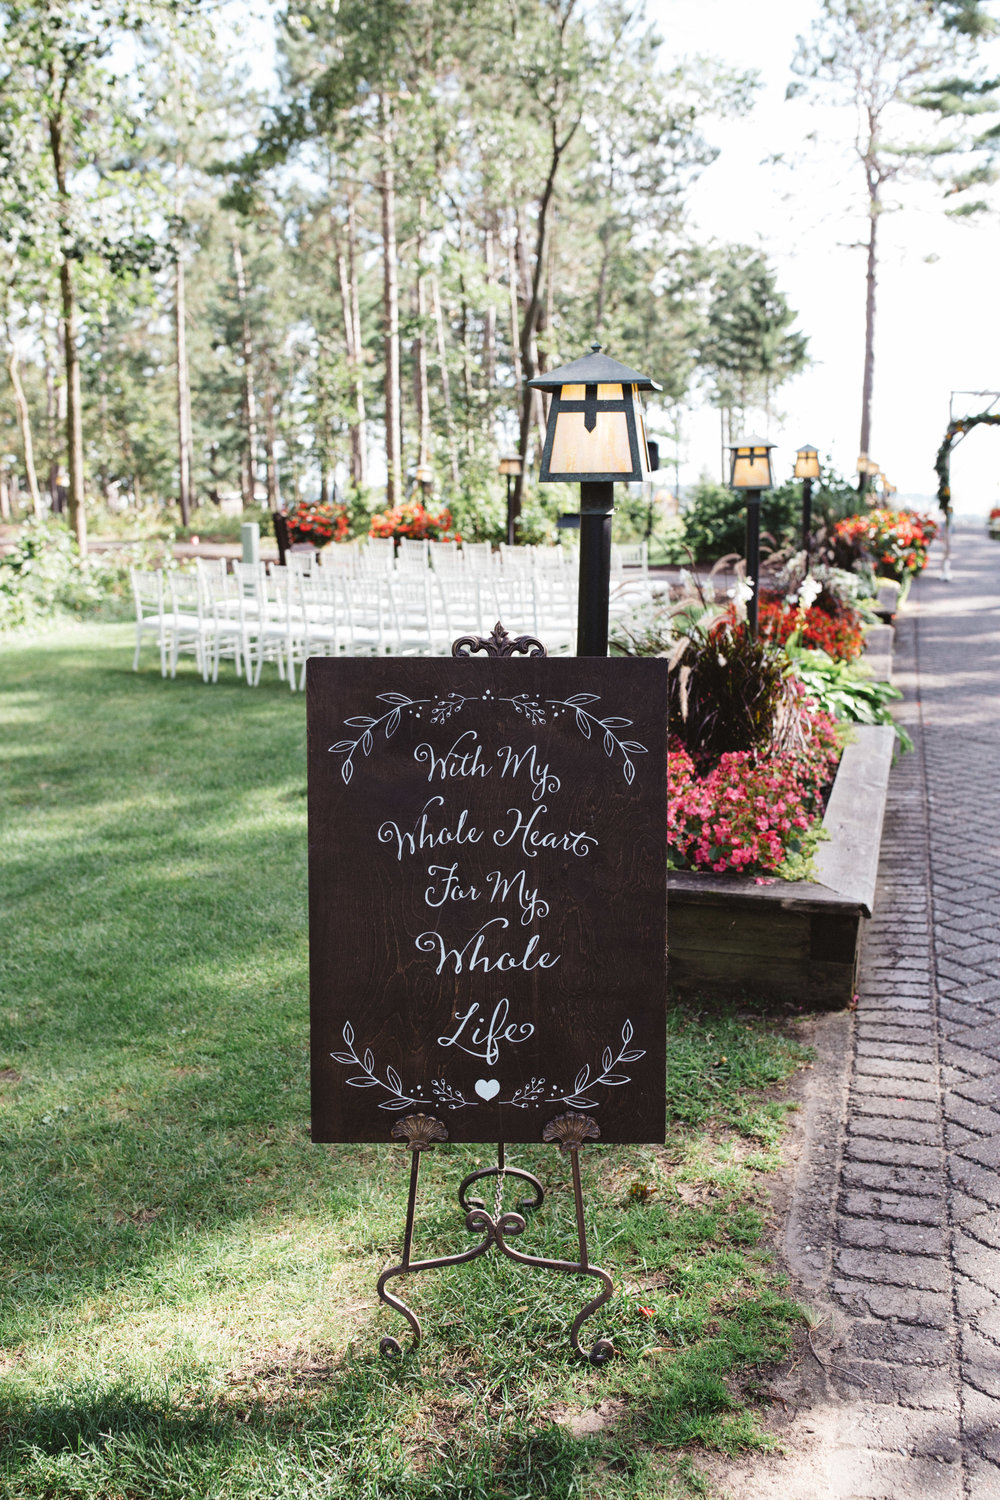 Ceremony decor at Grand View Lodge. Wedding photography by Britt DeZeeuw, Brainerd MN photographer.